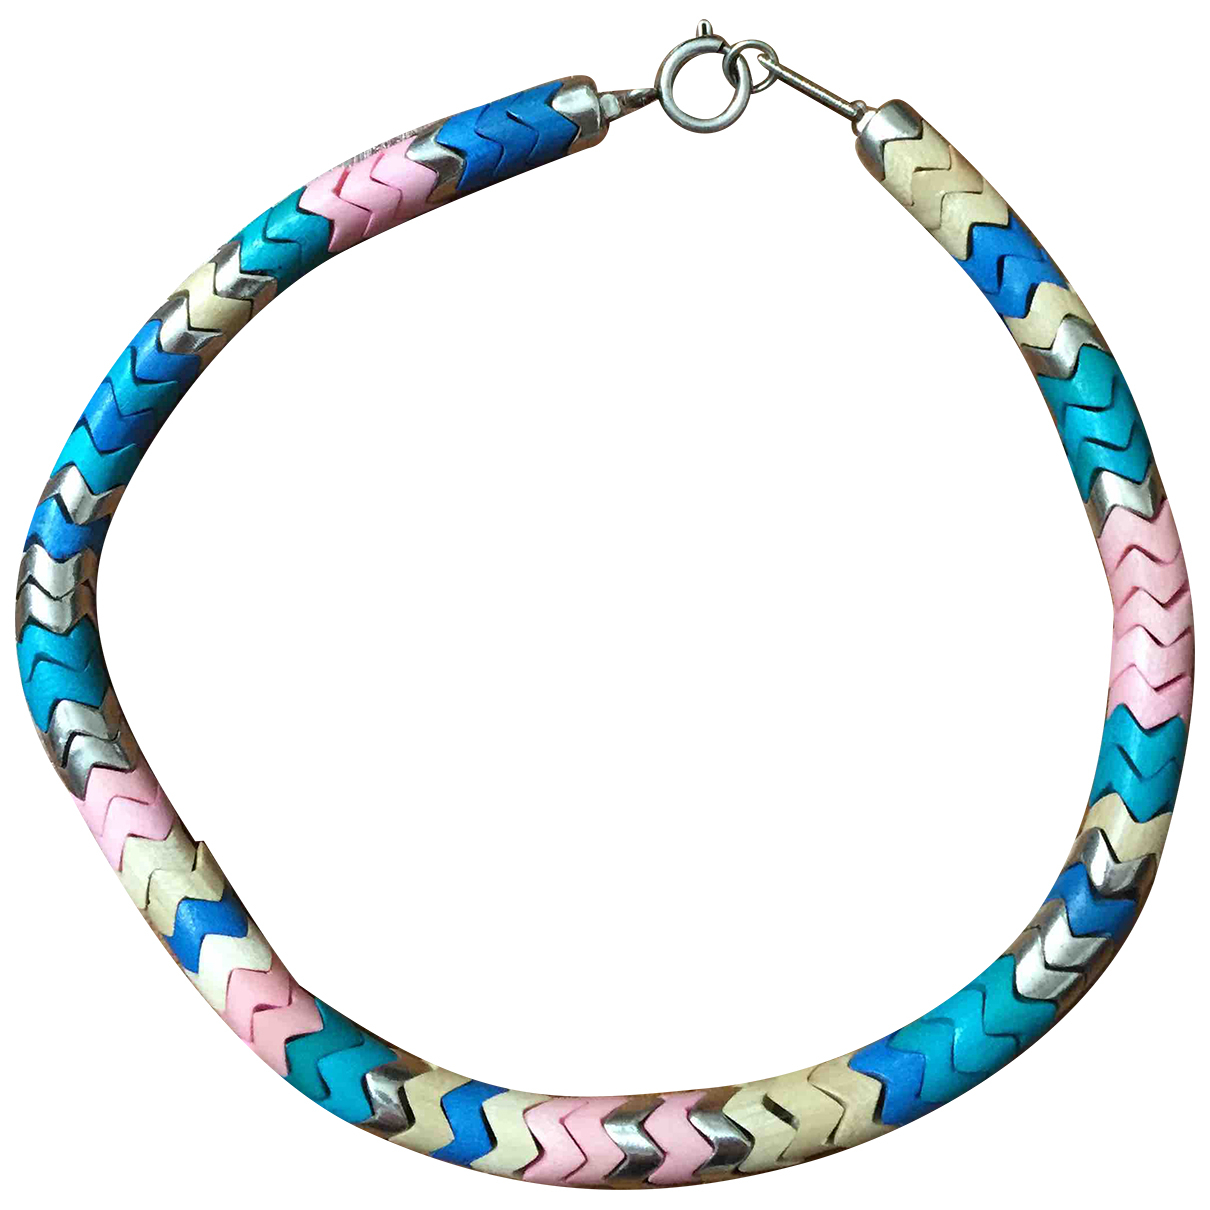 Isabel Marant N Multicolour Pearls necklace for Women N